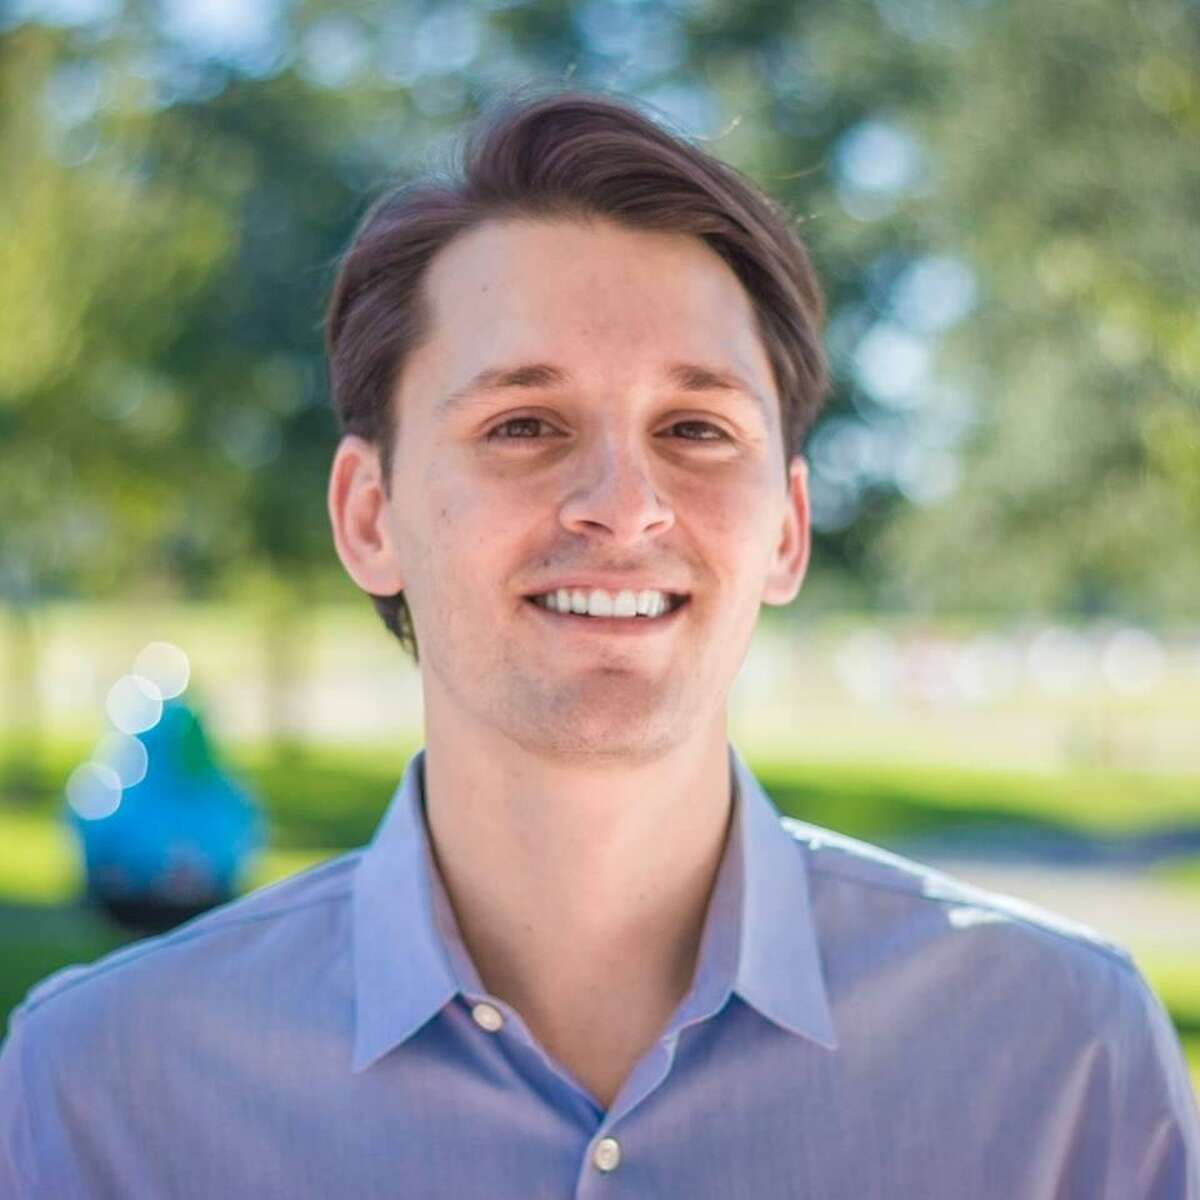 Management consultant Luke Orlando is running for Pearland City Council Position 1.